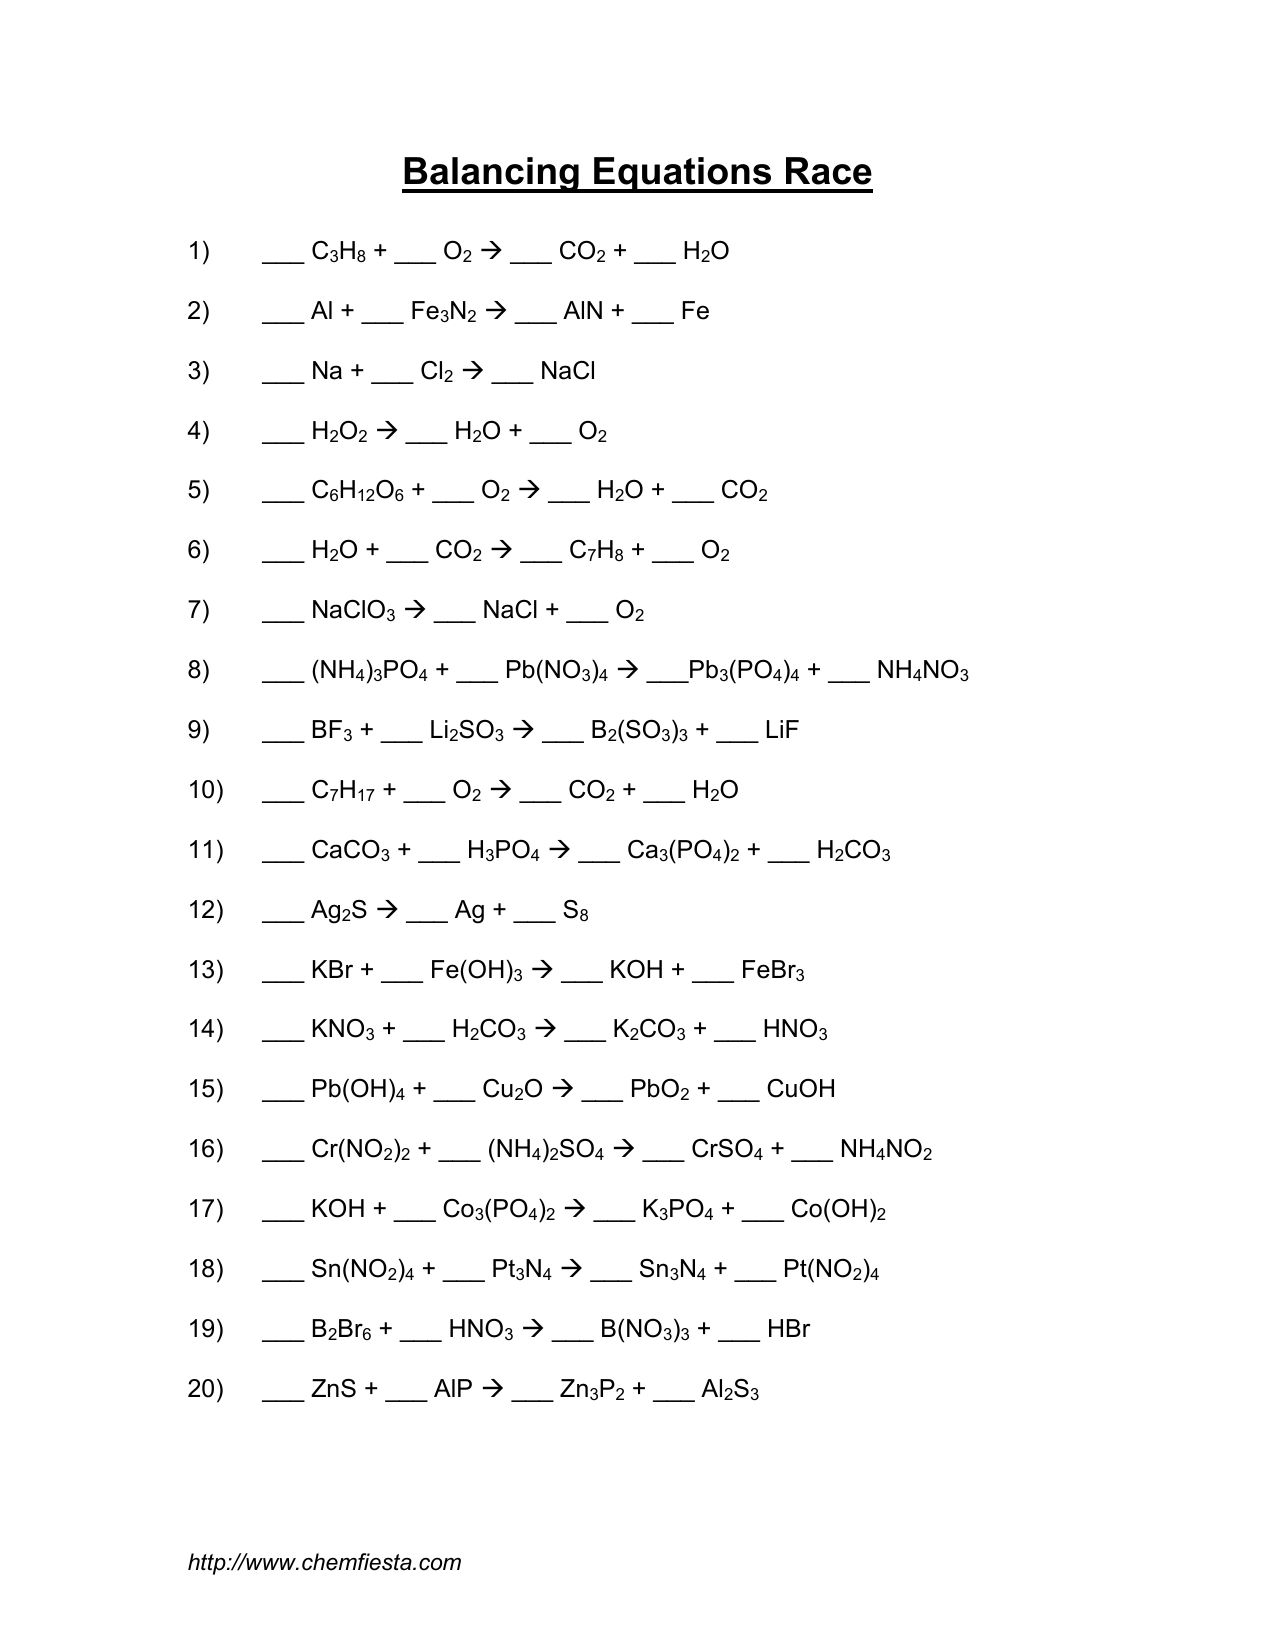 Balancing Equations Worksheet H3po4 Koh